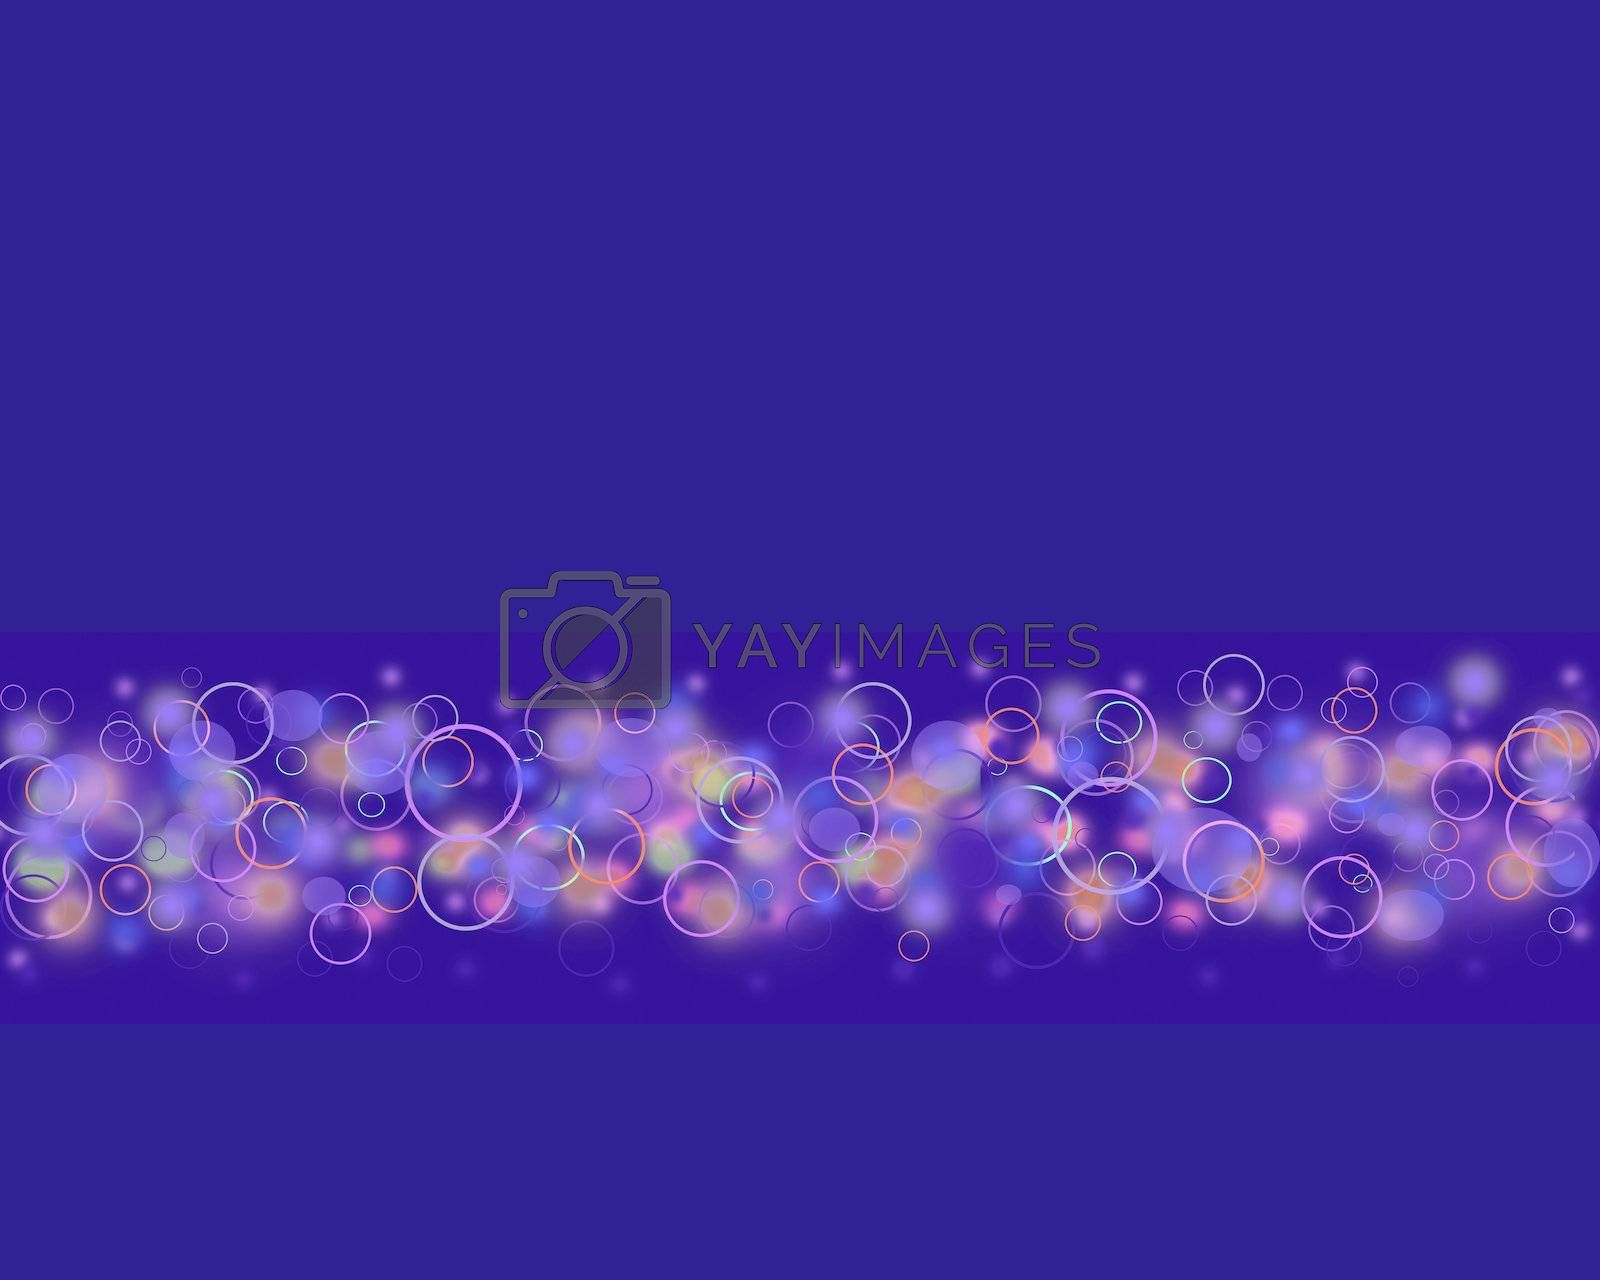 Colorful circle on dark blue background